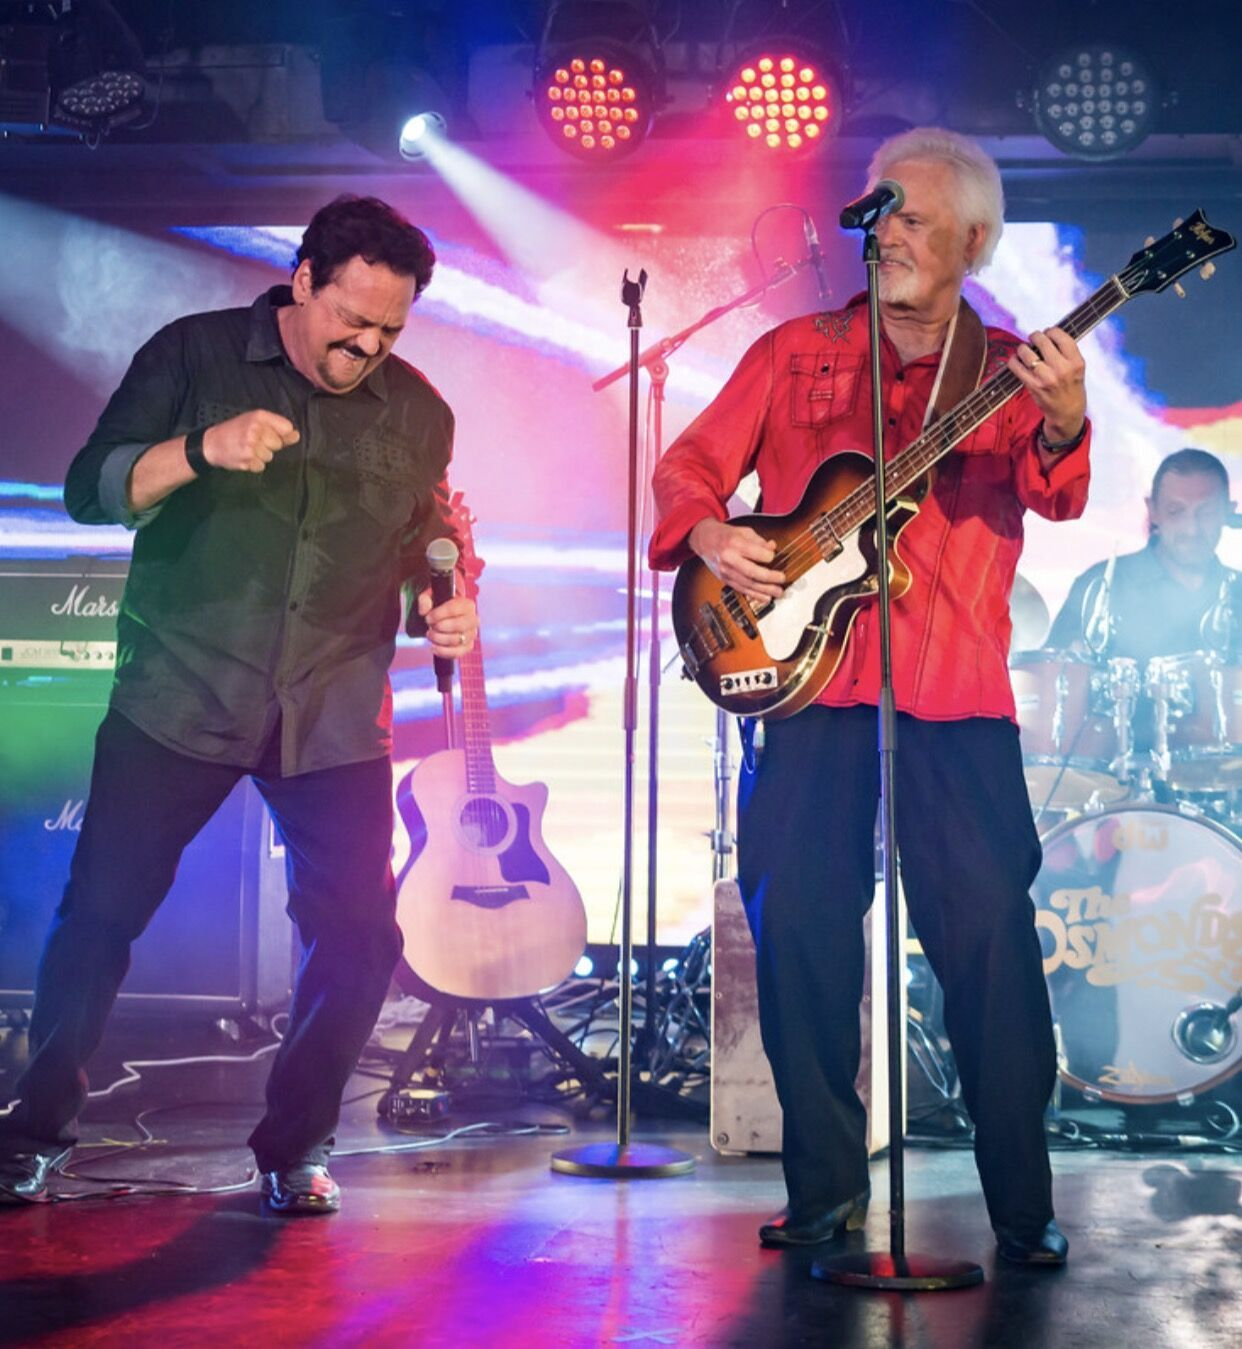 The Osmonds are bringing their Very Merry Rockin' Good Christmas tour to the Isle of Wight.